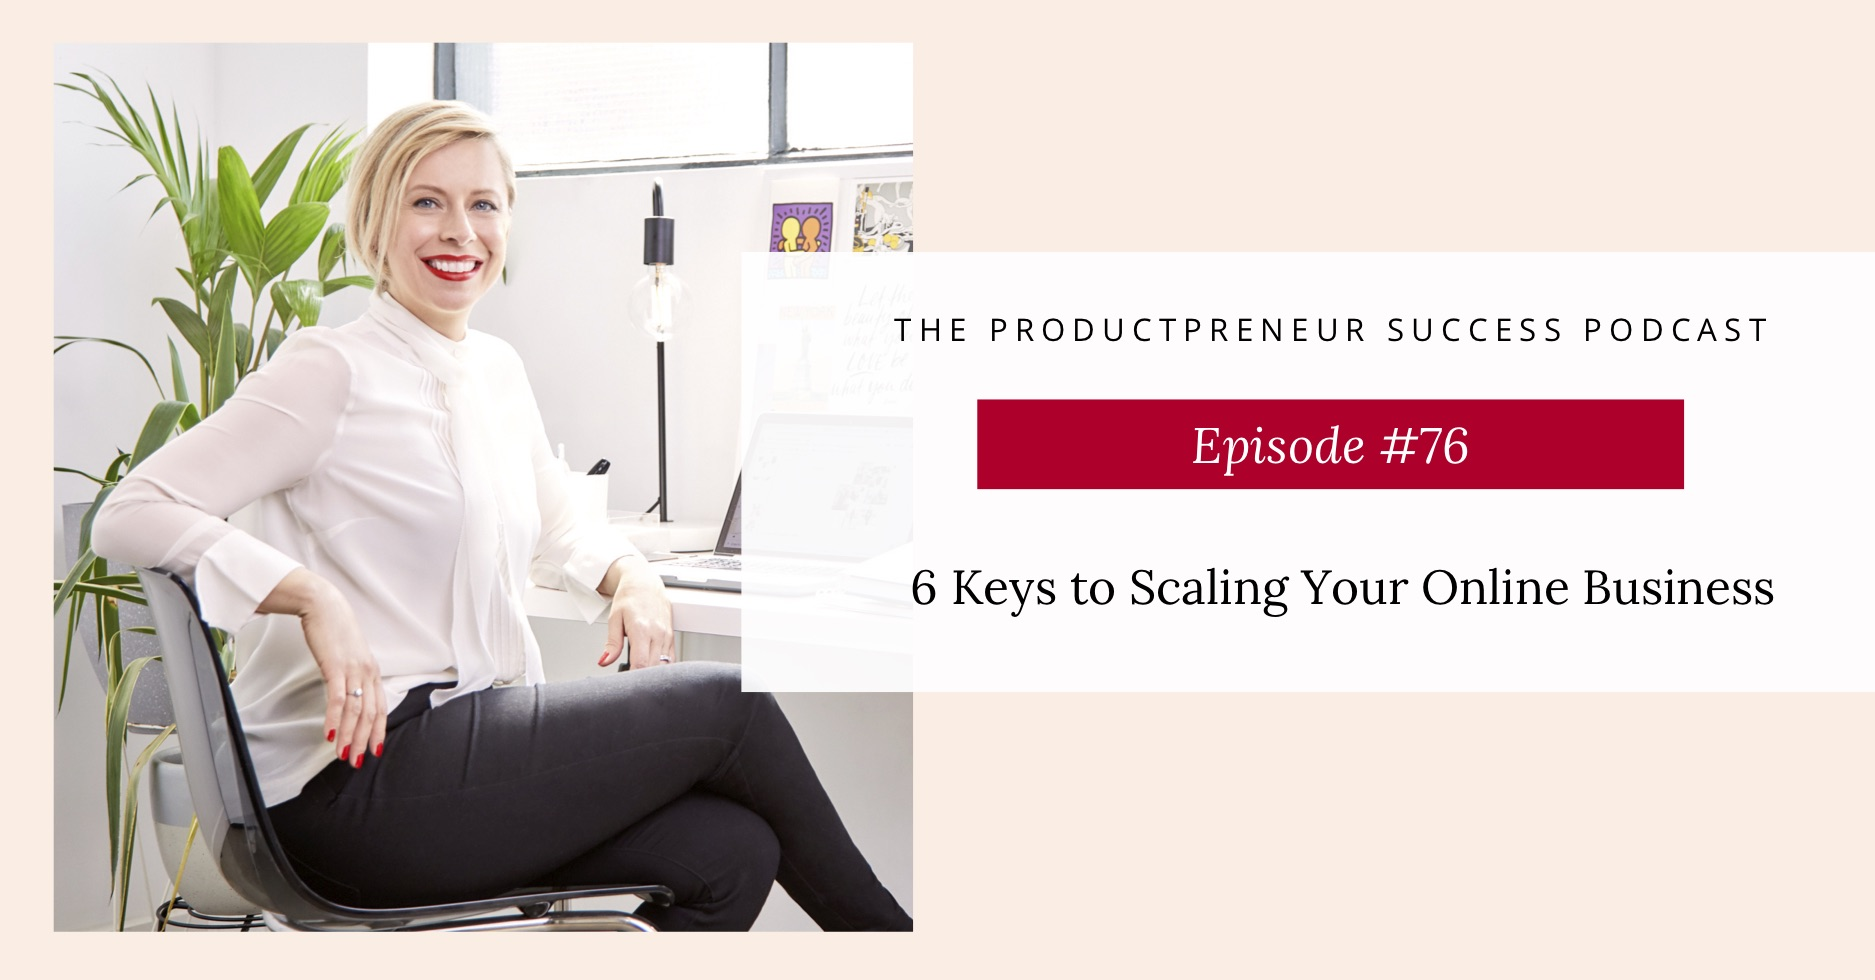 Podcast Title: 6 Key Strategies to Scale Your Online Business